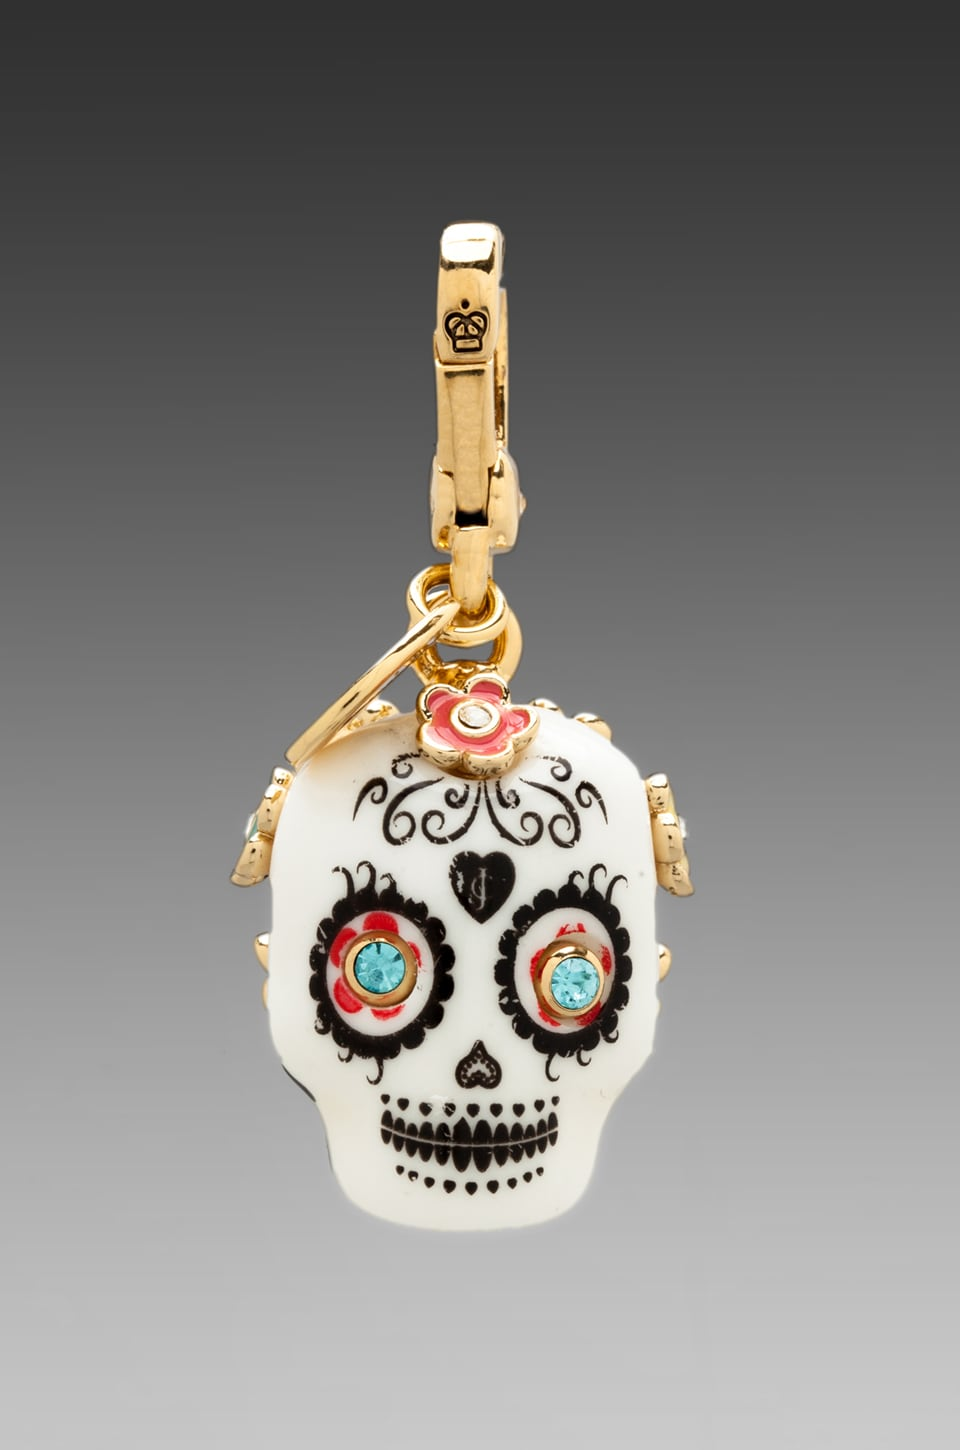 Juicy Couture Limited Edition Sugar Skull Charm in Gold